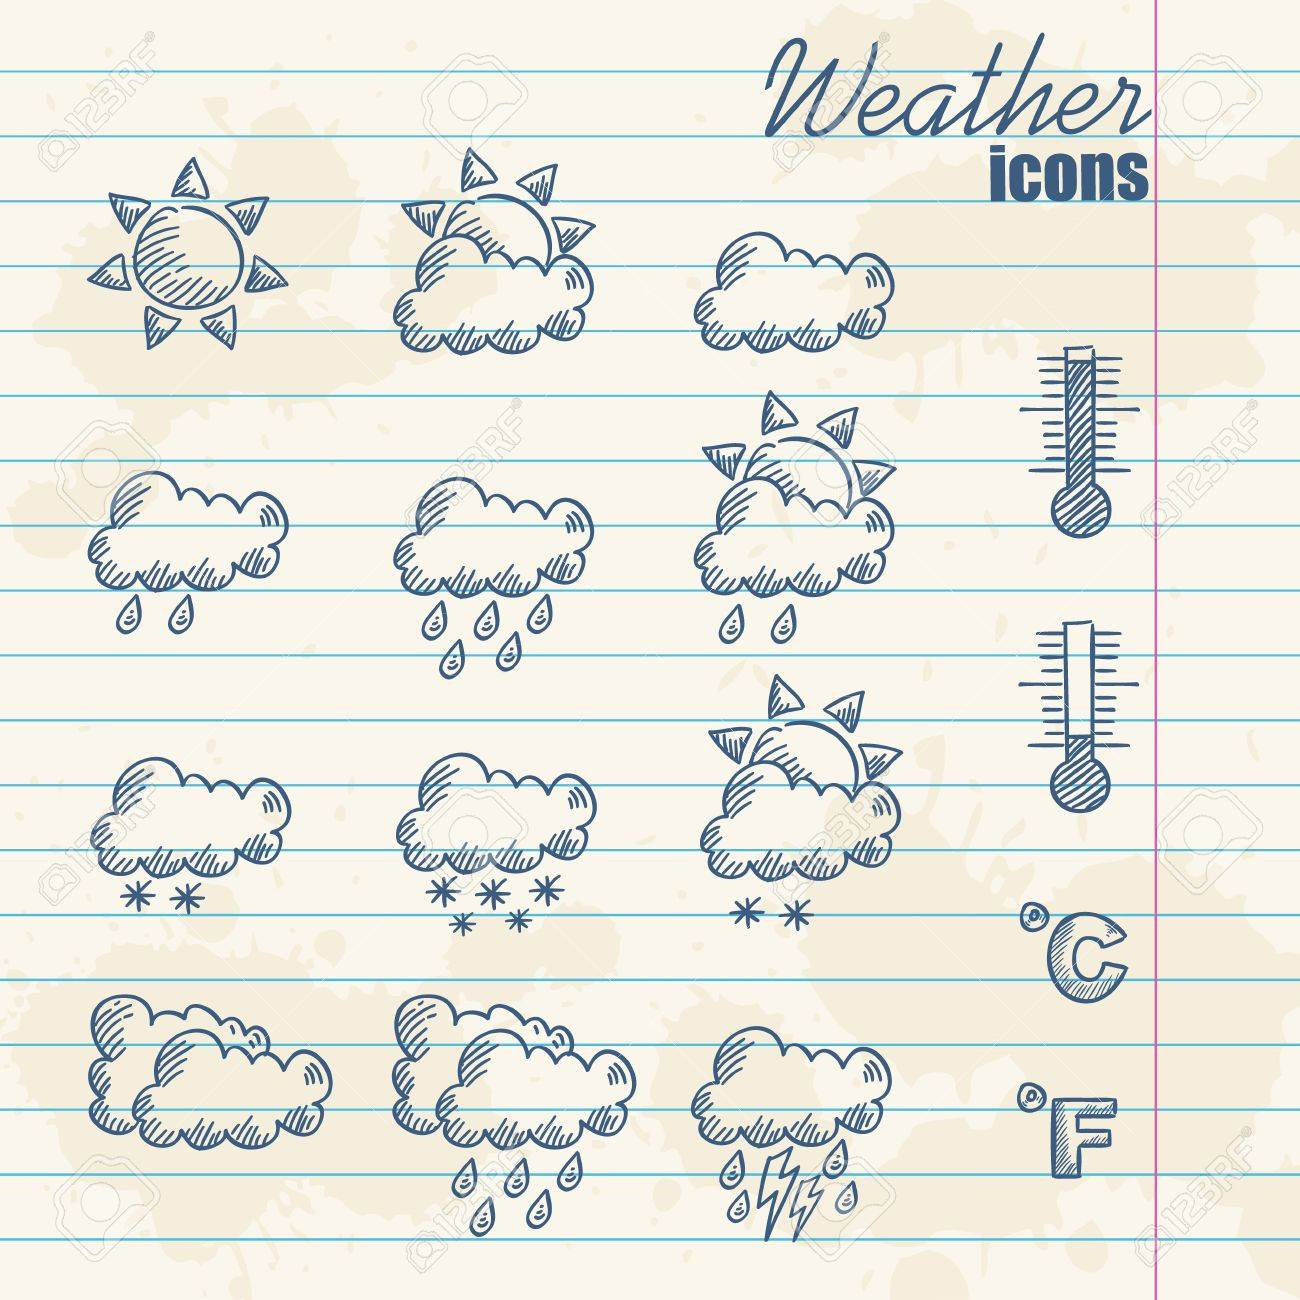 Retro weather icons hand drawn on grunge vintage background Stock Vector - 13554224